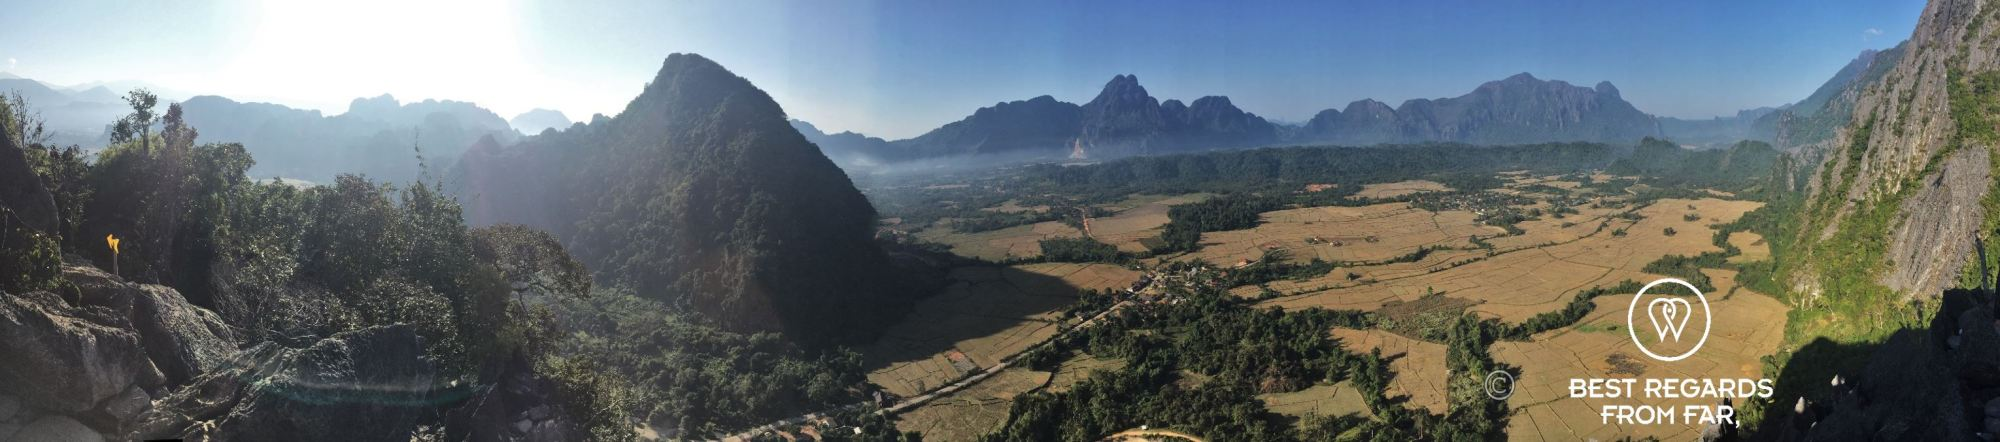 Exploring rural Vang Vieng and its caves, Laos